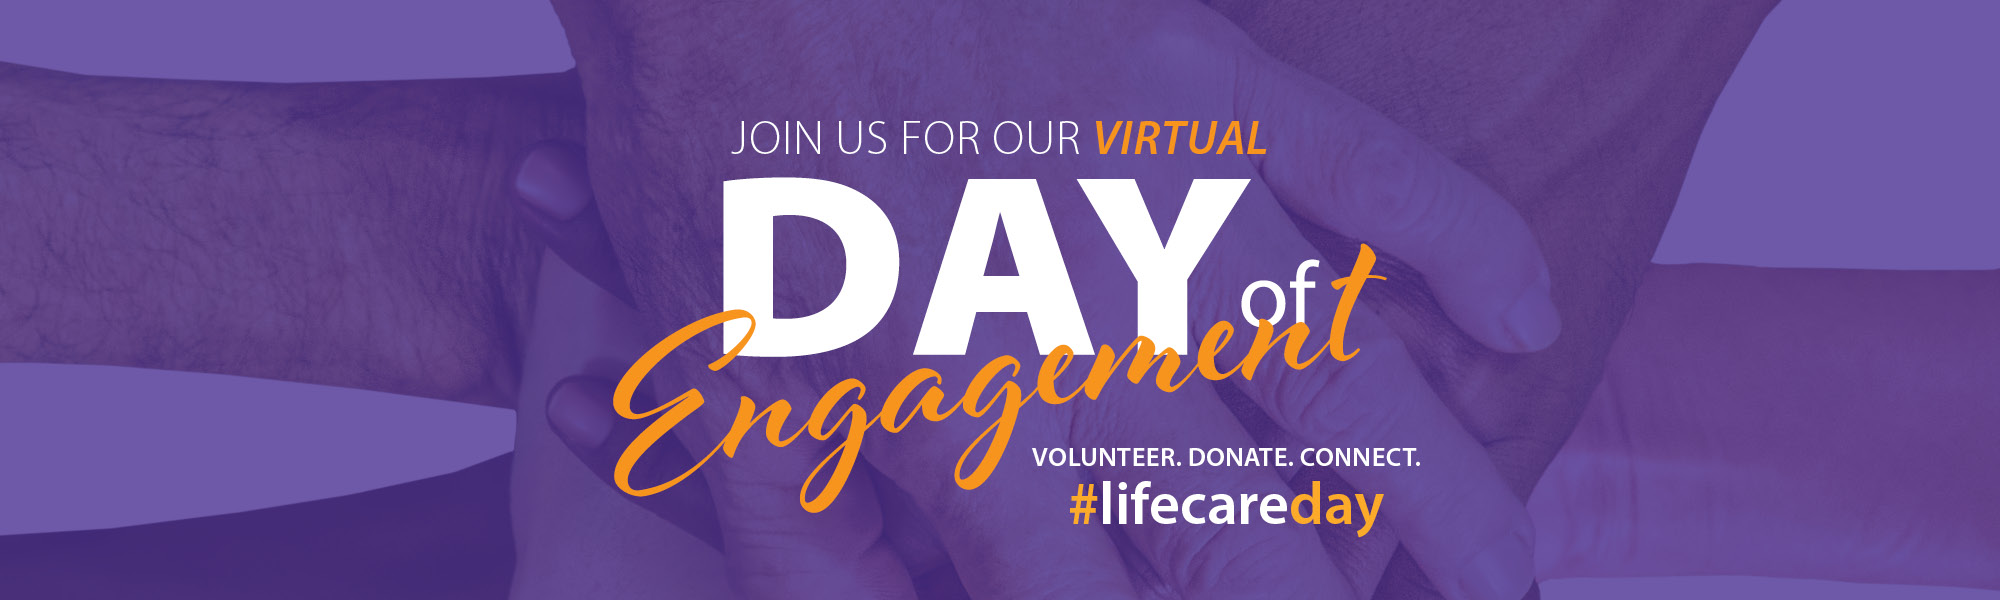 Join us for our virtual Day of Engagement